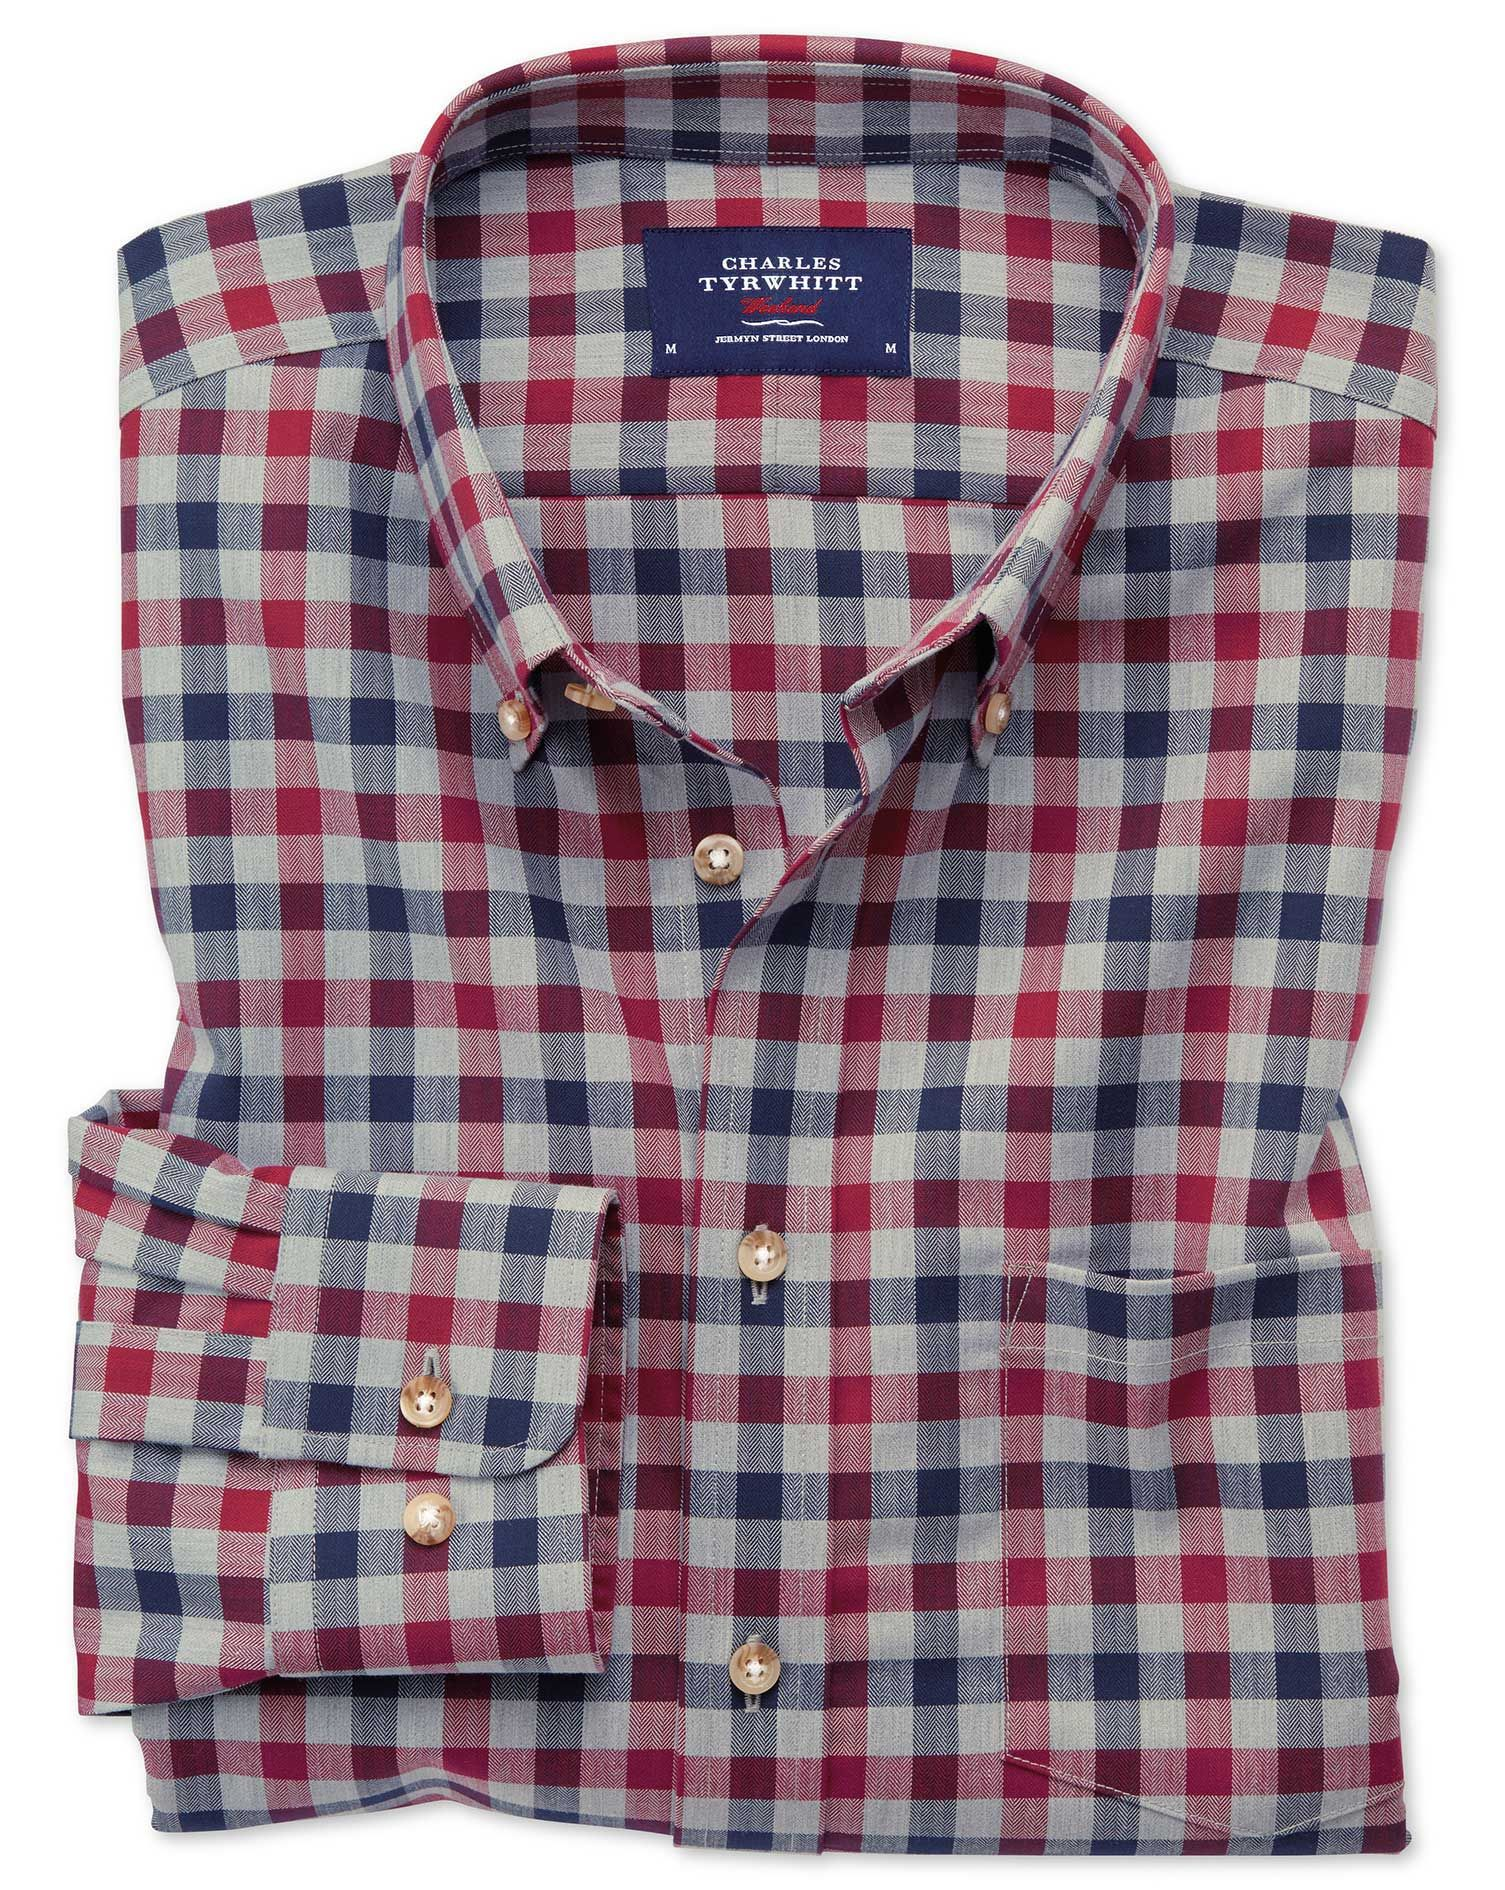 1a399f6f Extra slim fit button-down non-iron twill red and navy blue gingham shirt